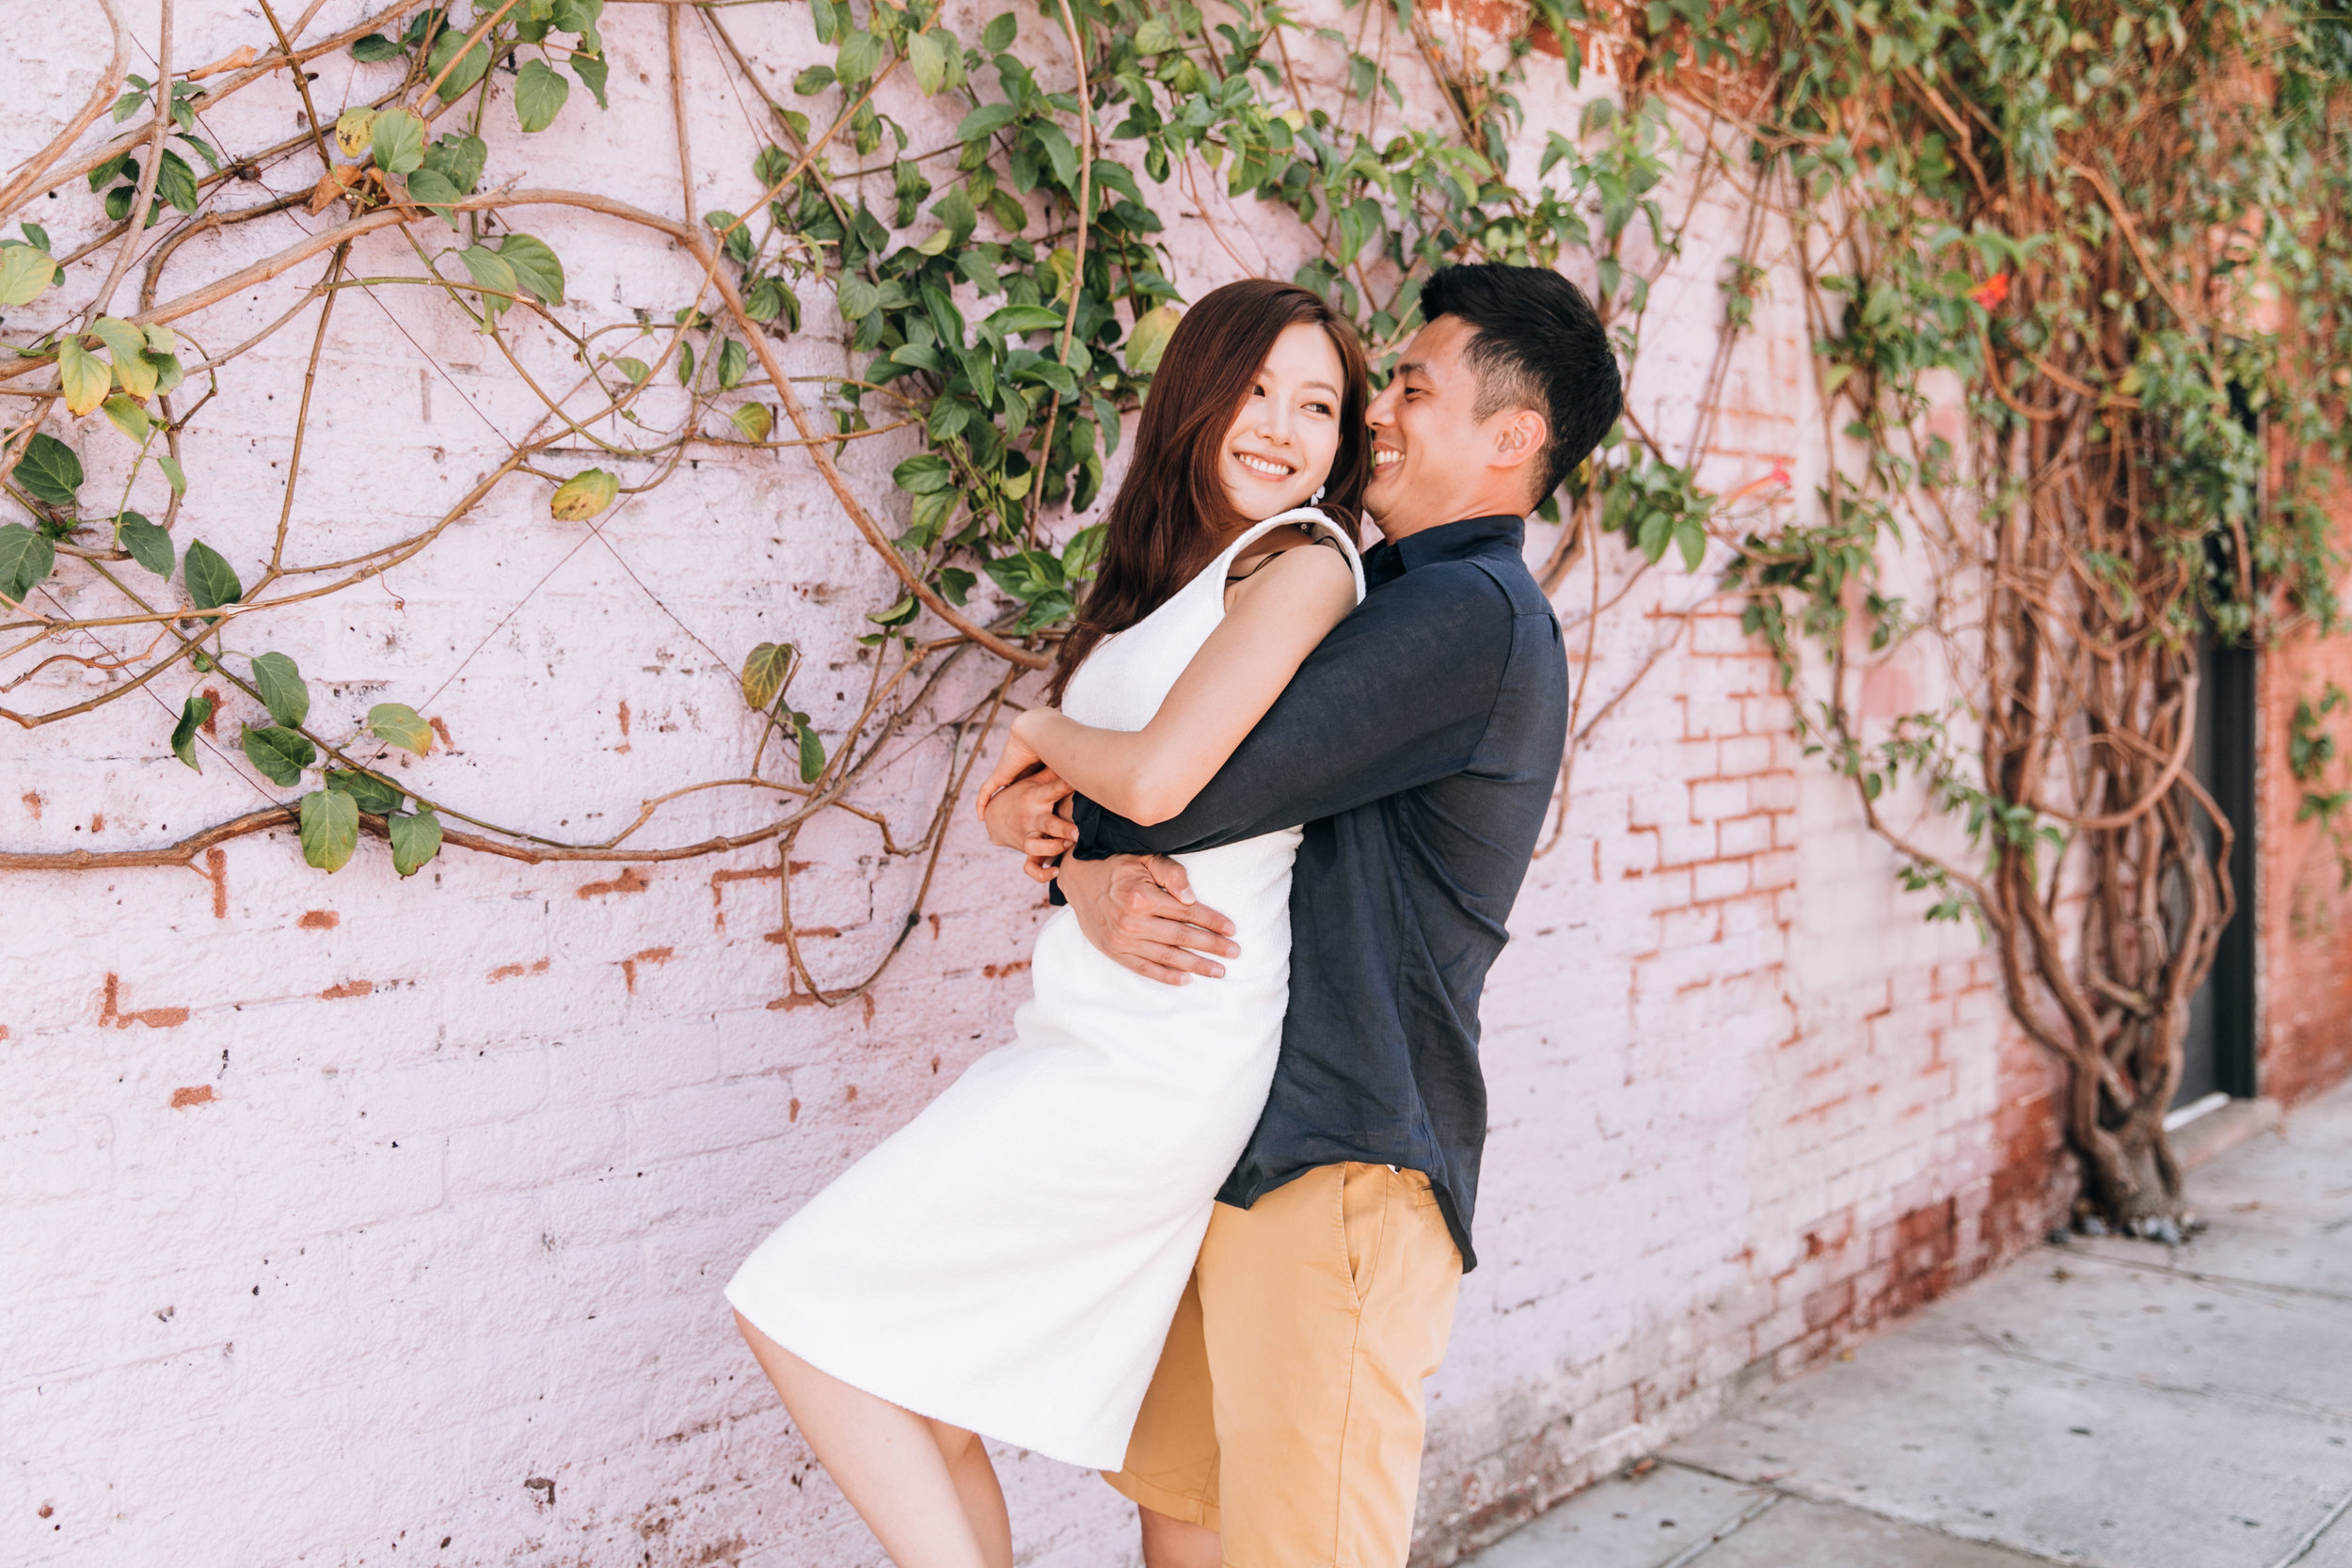 DTLA engagement photographer, SoCal engagement photographer, Southern California engagement photographer, Los Angeles engagement photographer, DTLA Arts district engagement shoot, DTLA engagement